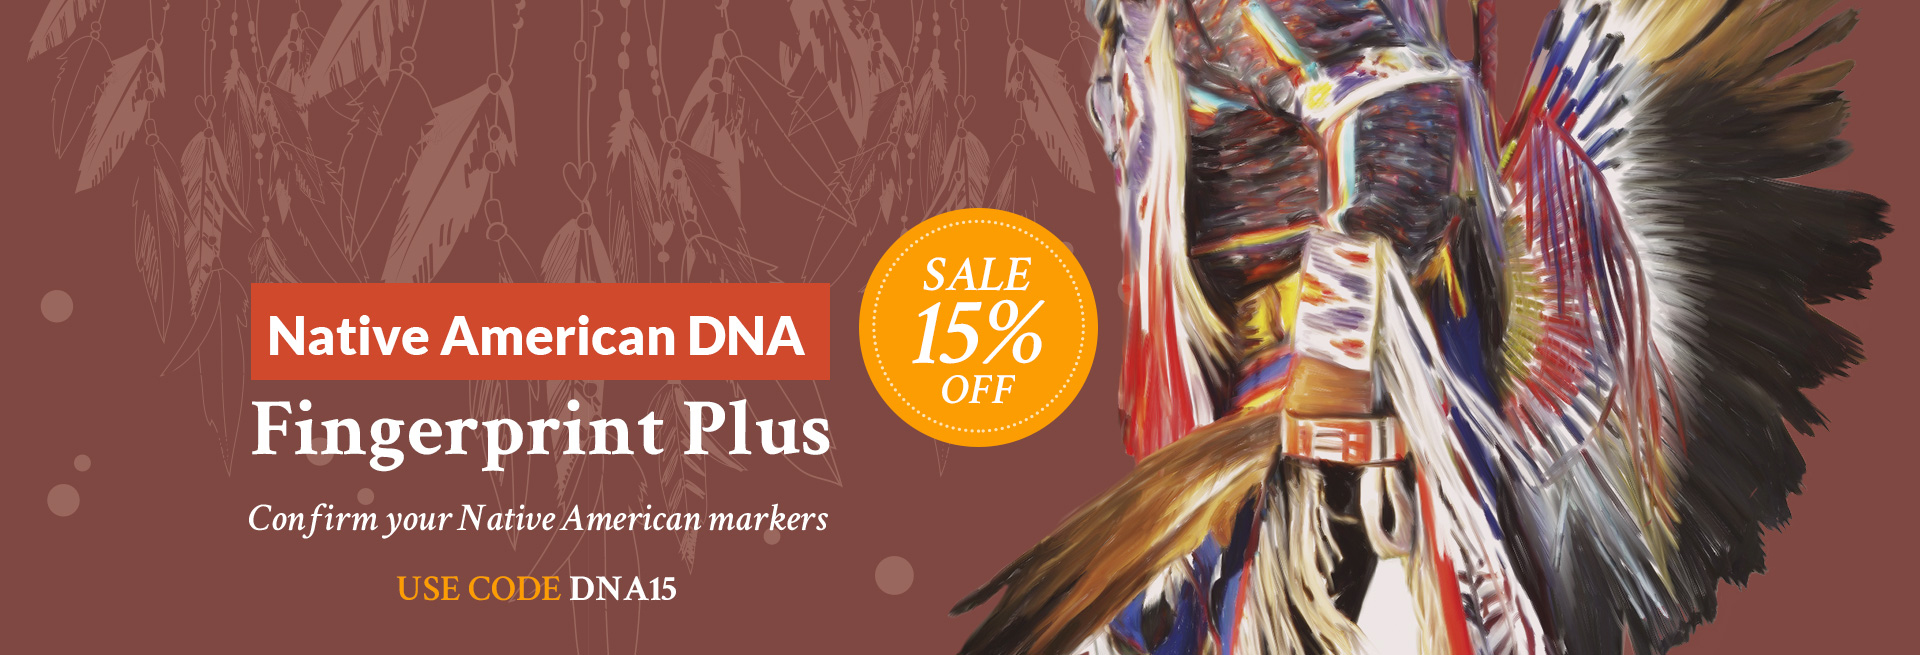 Native American DNA offer